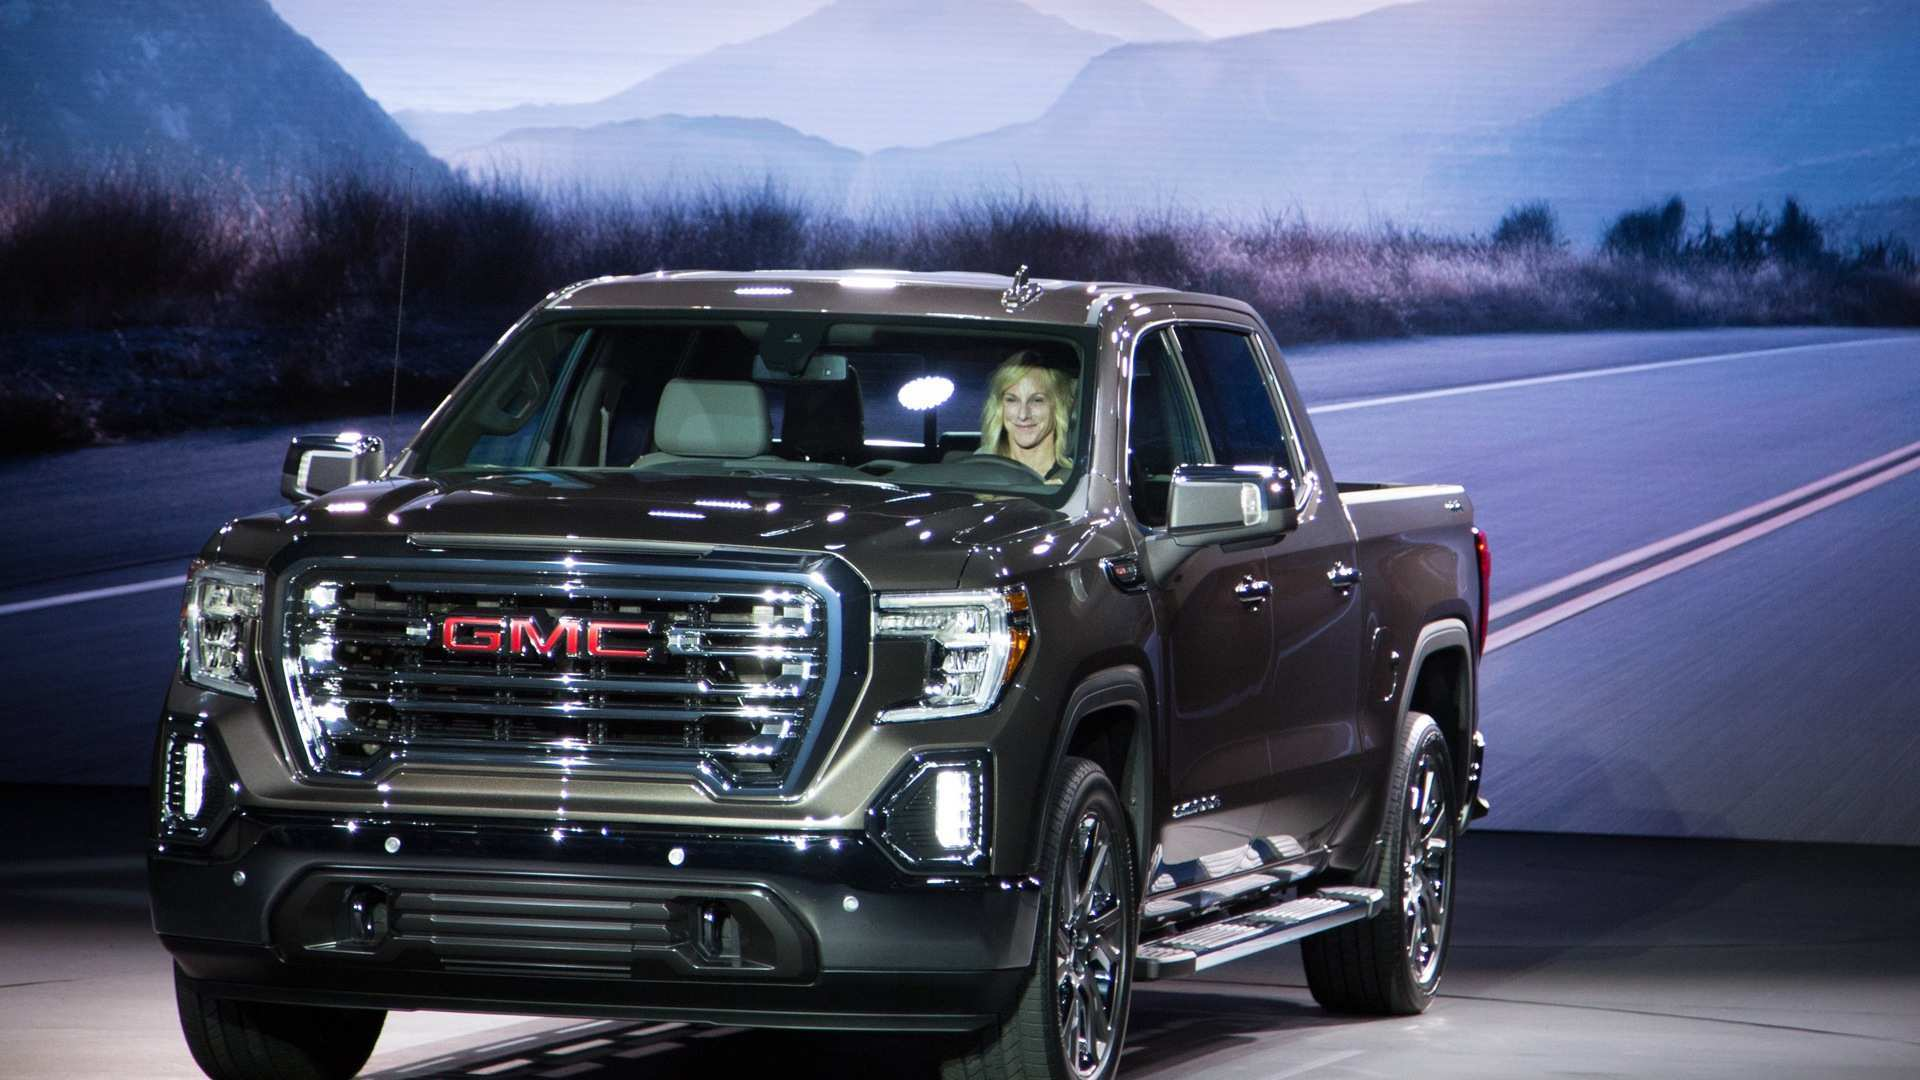 32 Best 2019 GMC Sierra 1500 Diesel Images